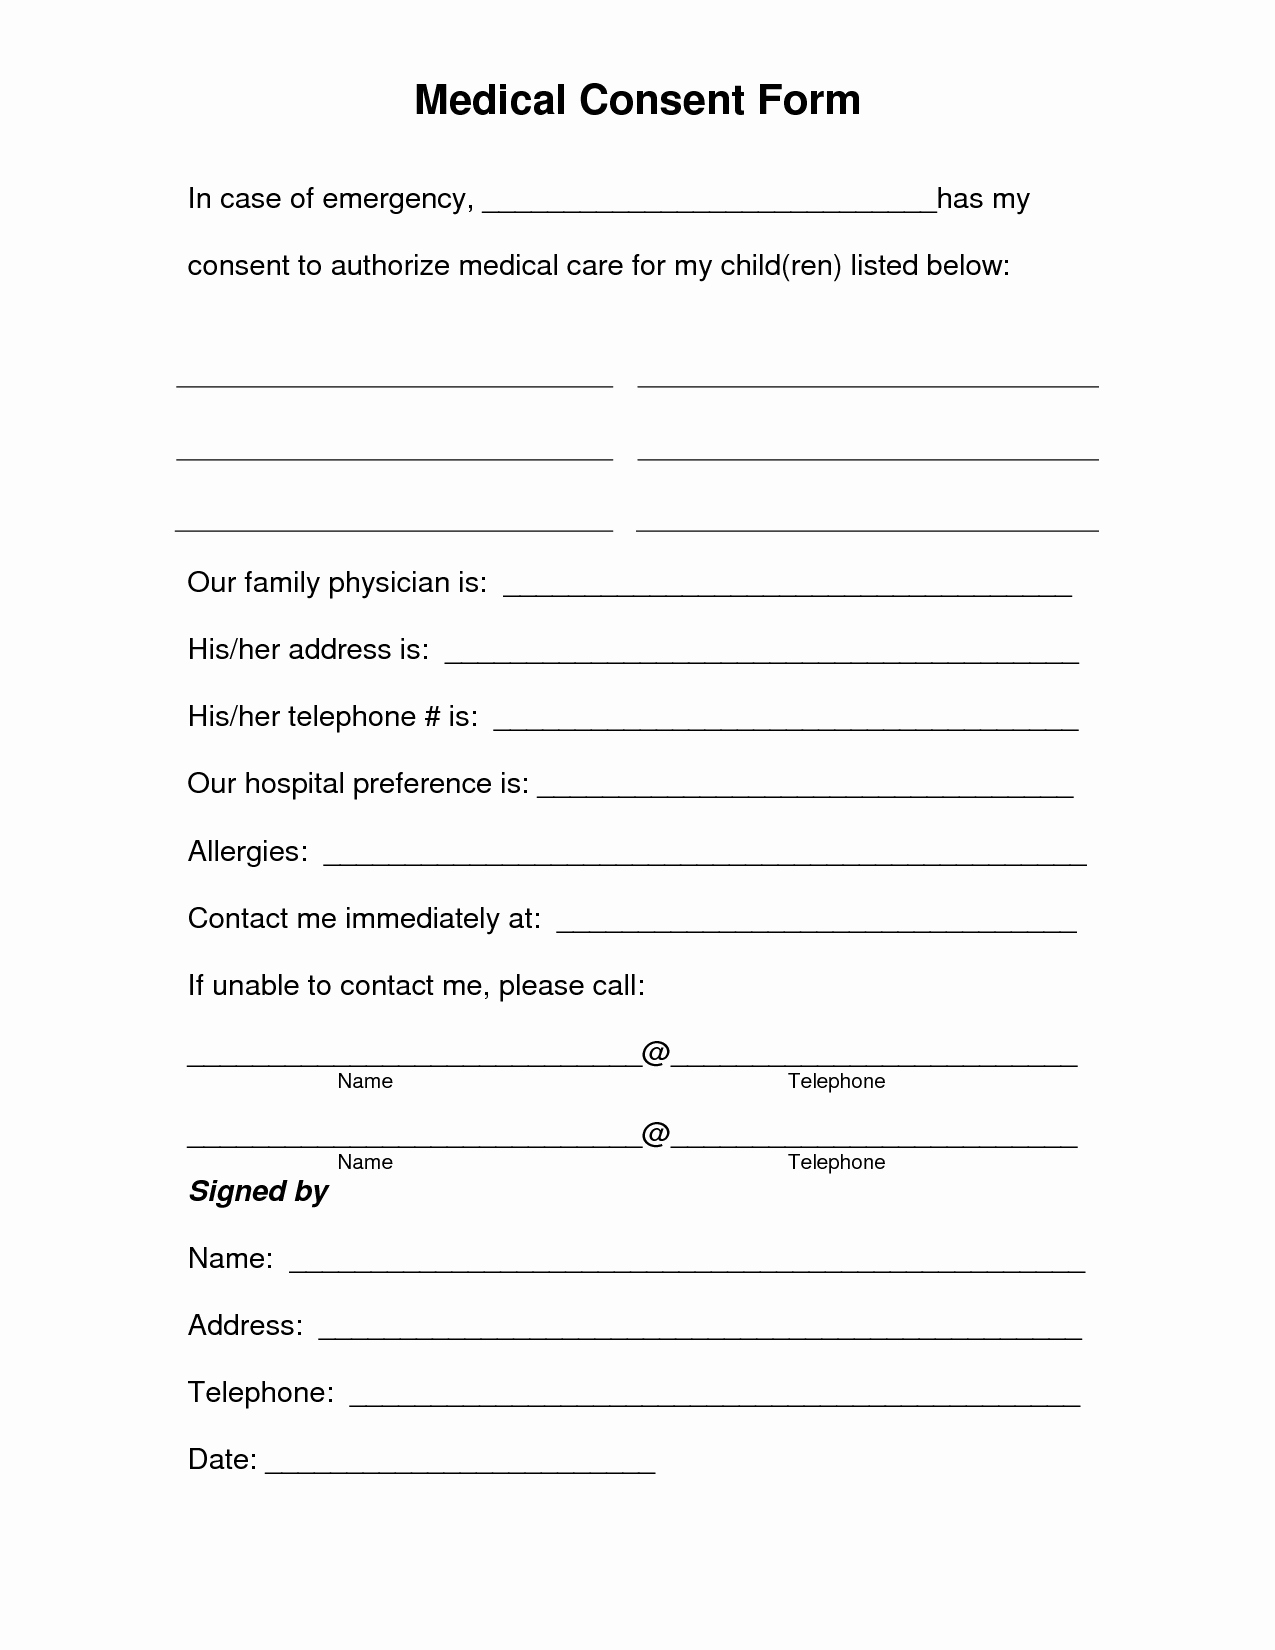 Medical Record forms Template Awesome Medical Record Release form Template